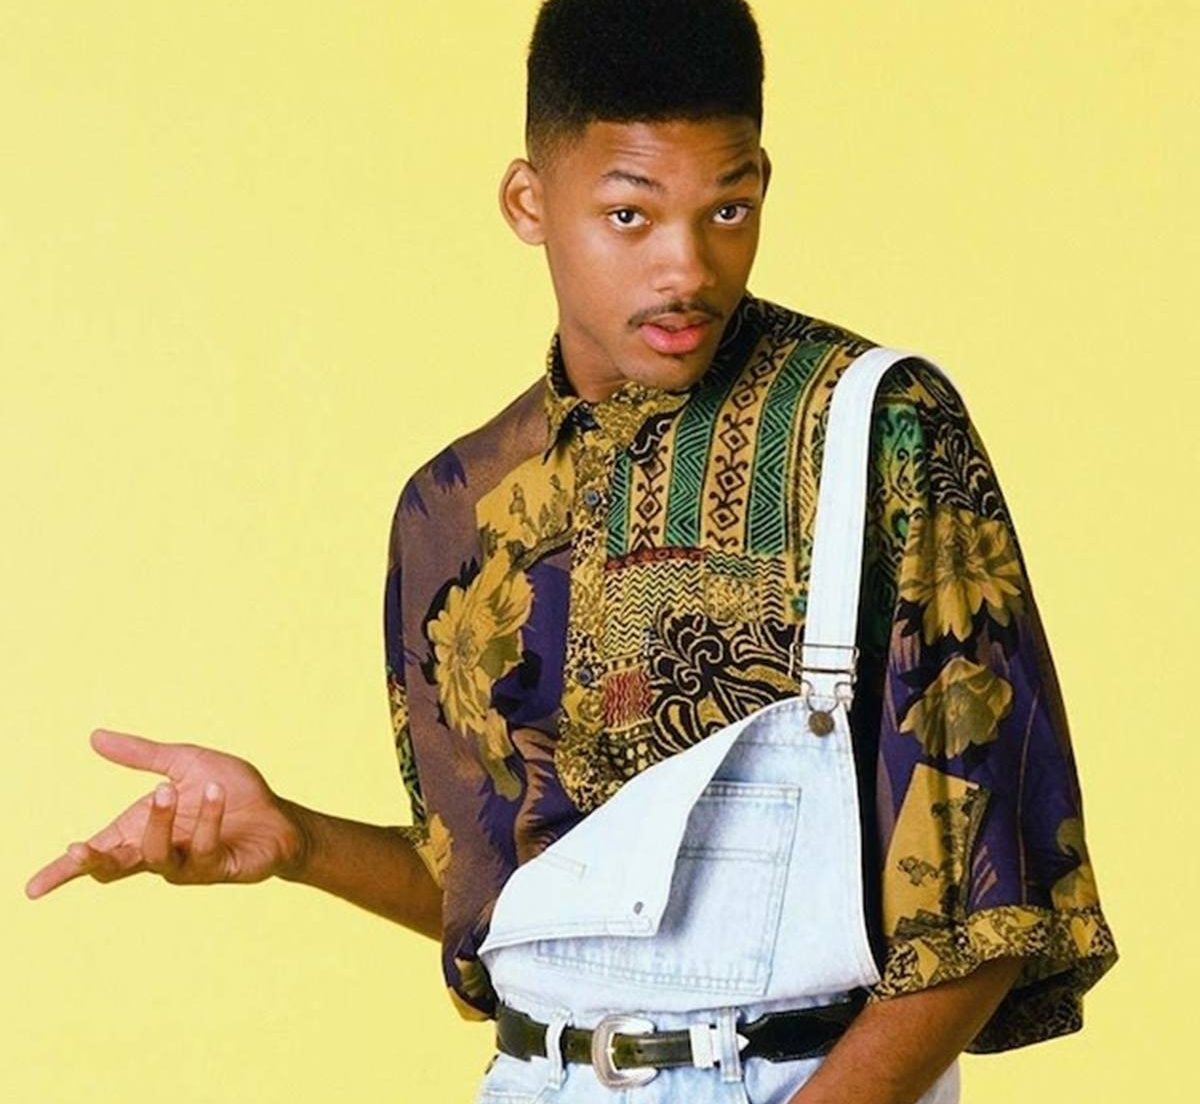 1 17 e1603274041275 20 Things You May Not Have Realised About The Fresh Prince Of Bel-Air